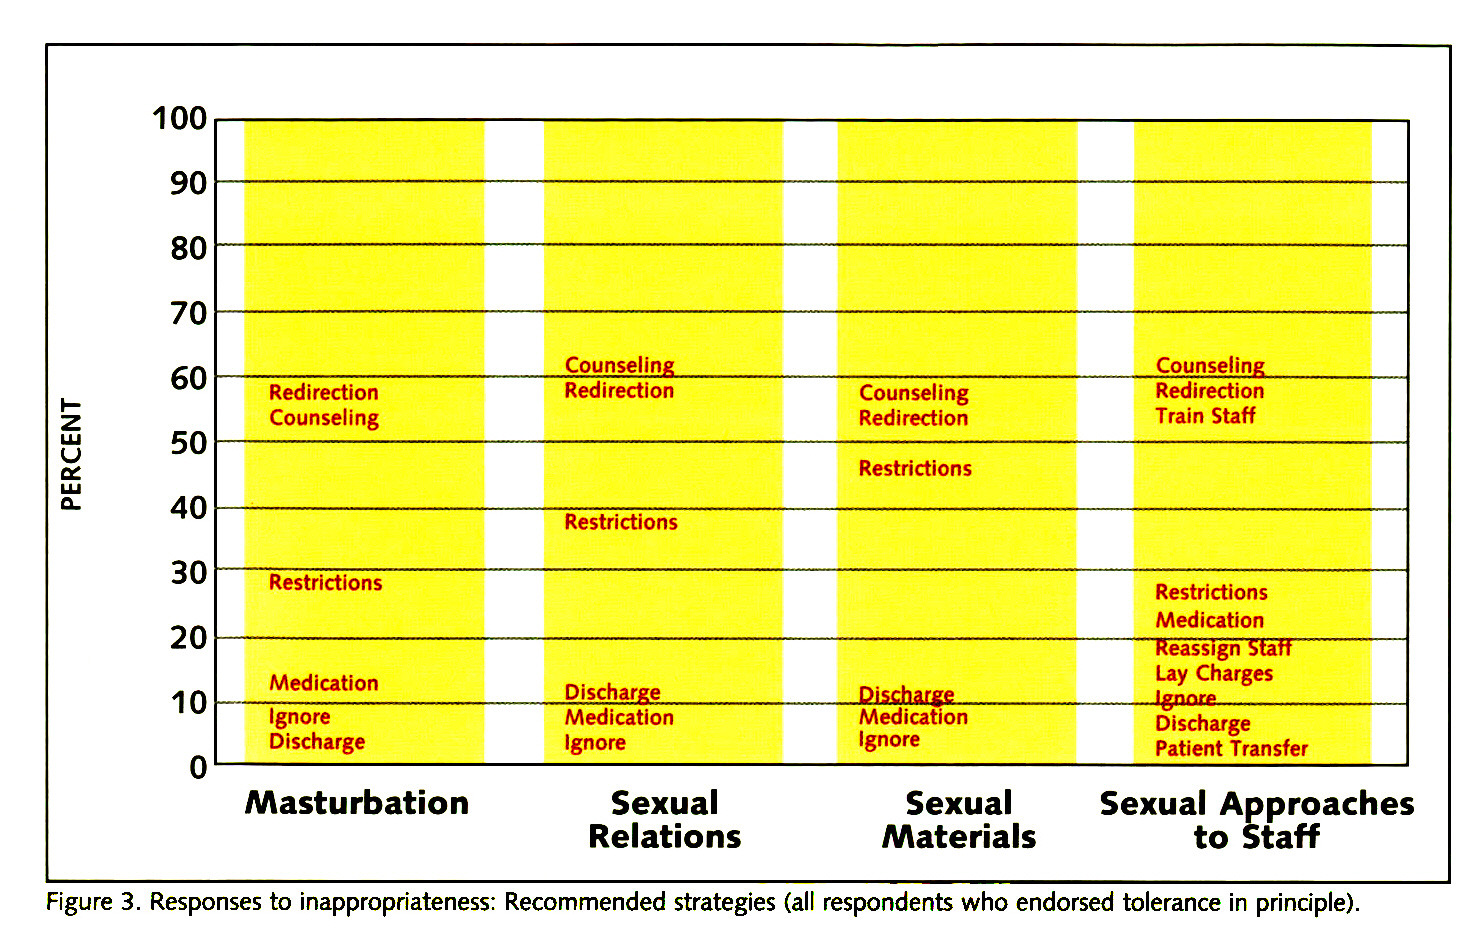 Figure 3. Responses to inappropriateness: Recommended strategies (all respondents who endorsed tolerance in principle).